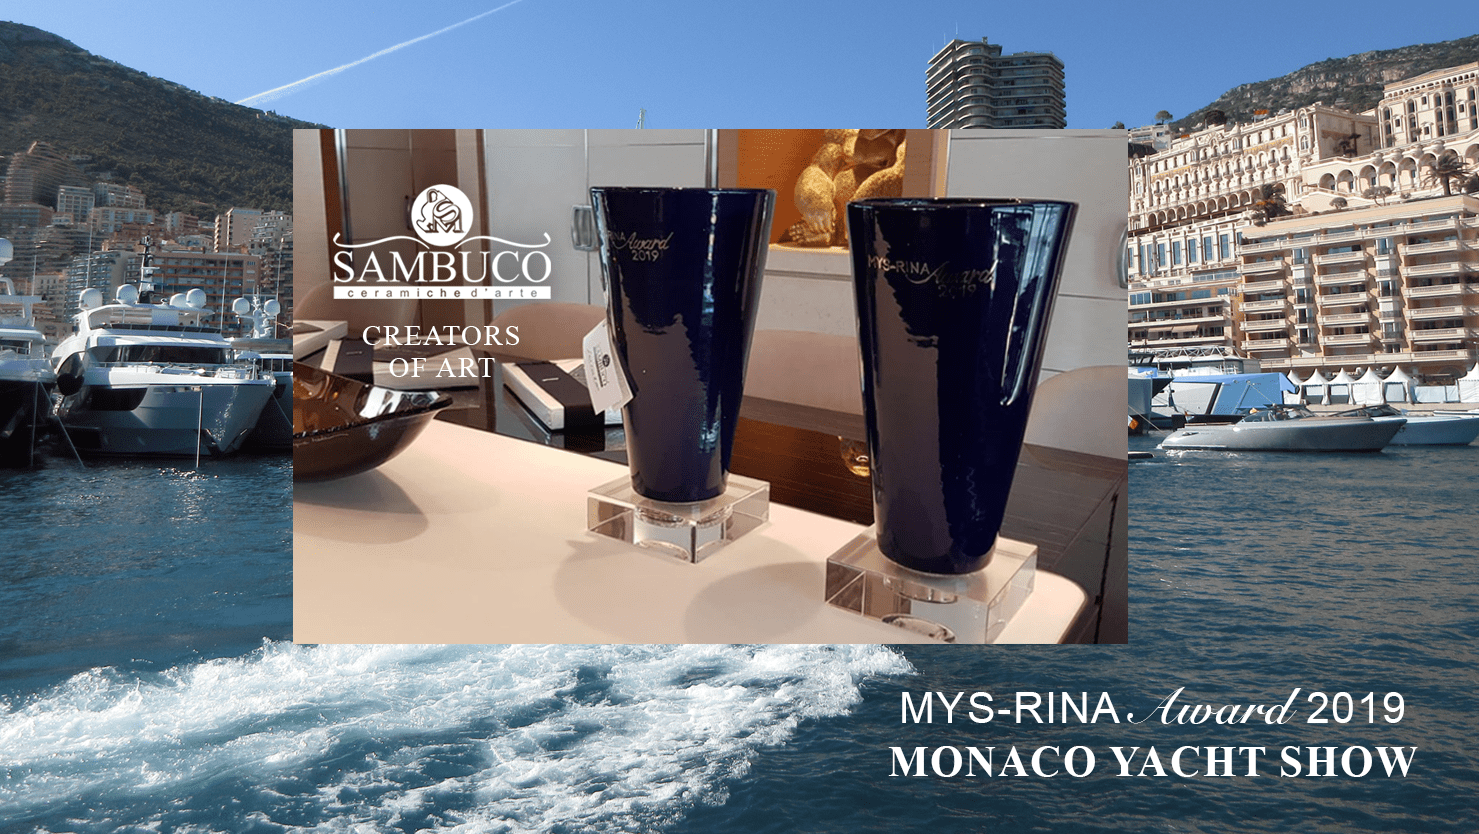 Sambuco at MYS Monaco Yacht Show 2019 with its creations.